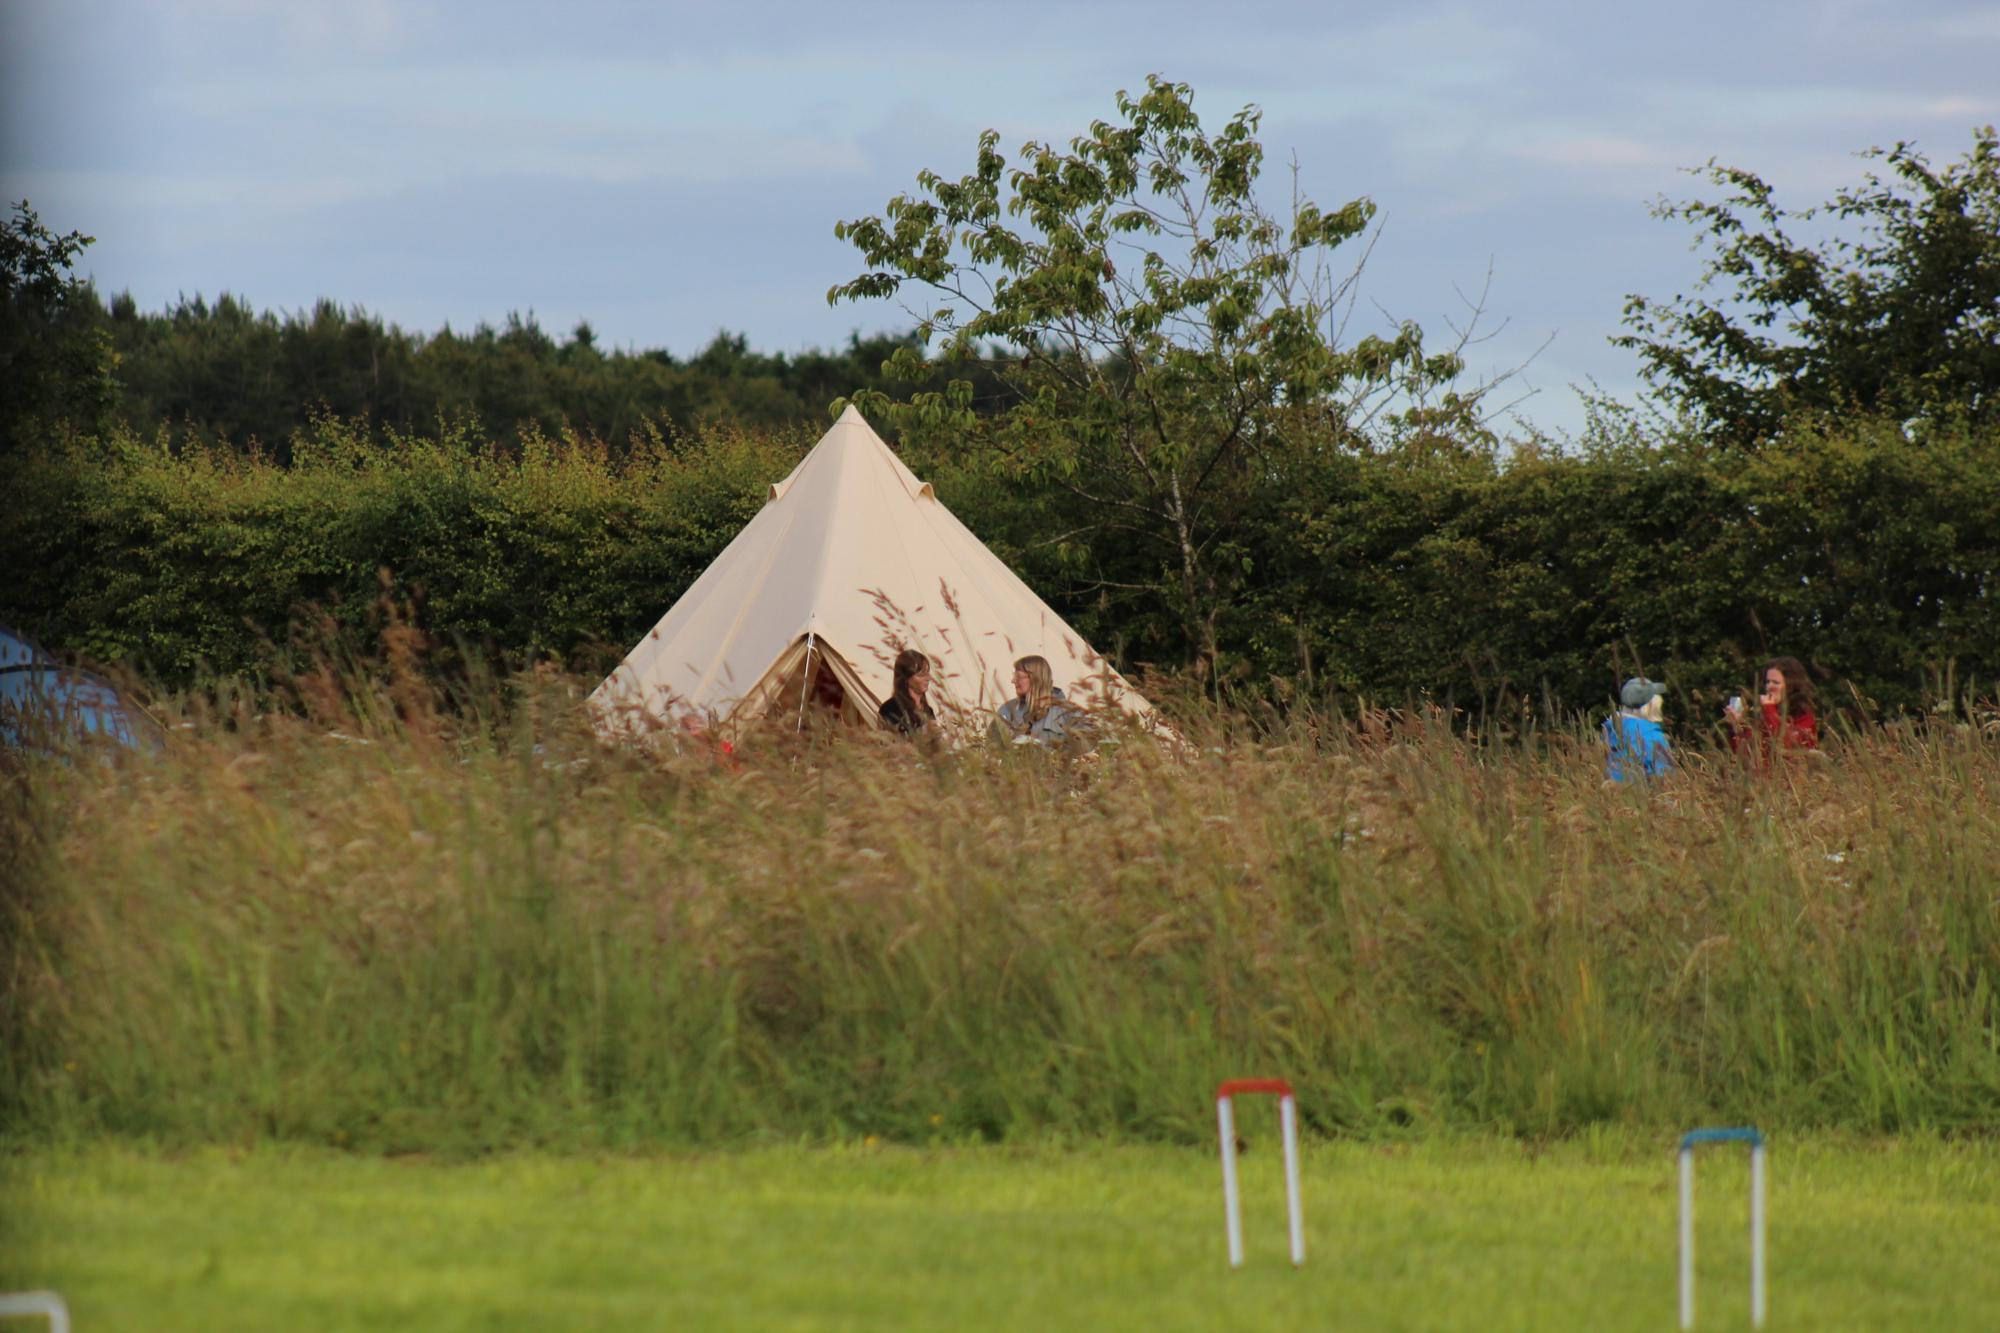 Campsites in East Scotland - Cool Camping